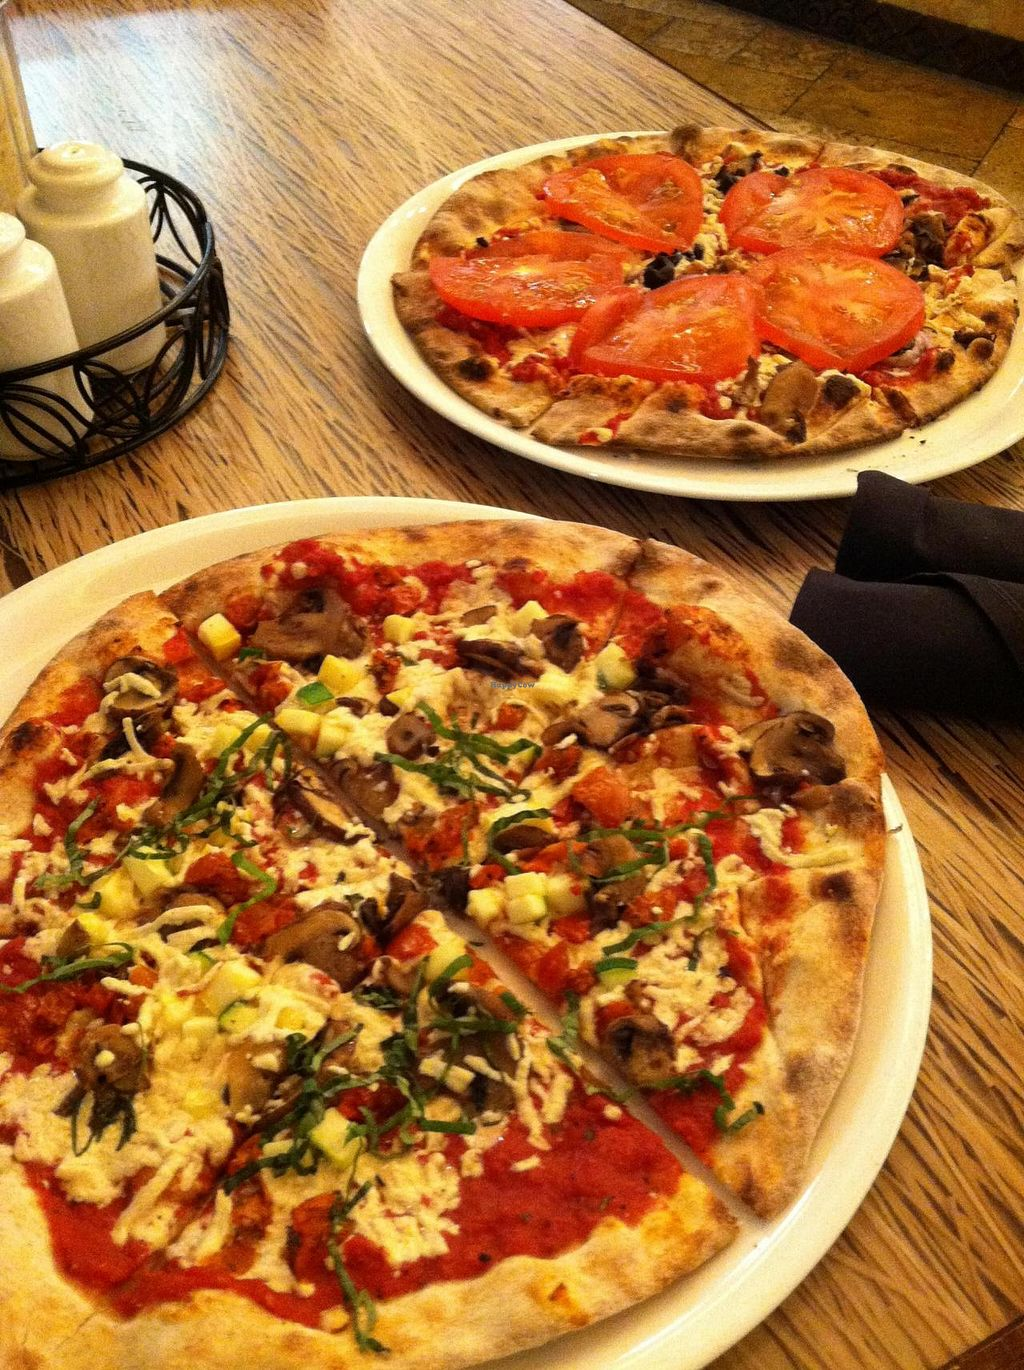 """Photo of Malawi's Pizza  by <a href=""""/members/profile/Meggie%20and%20Ben"""">Meggie and Ben</a> <br/>Vegan pizzas <br/> August 22, 2014  - <a href='/contact/abuse/image/50449/77898'>Report</a>"""